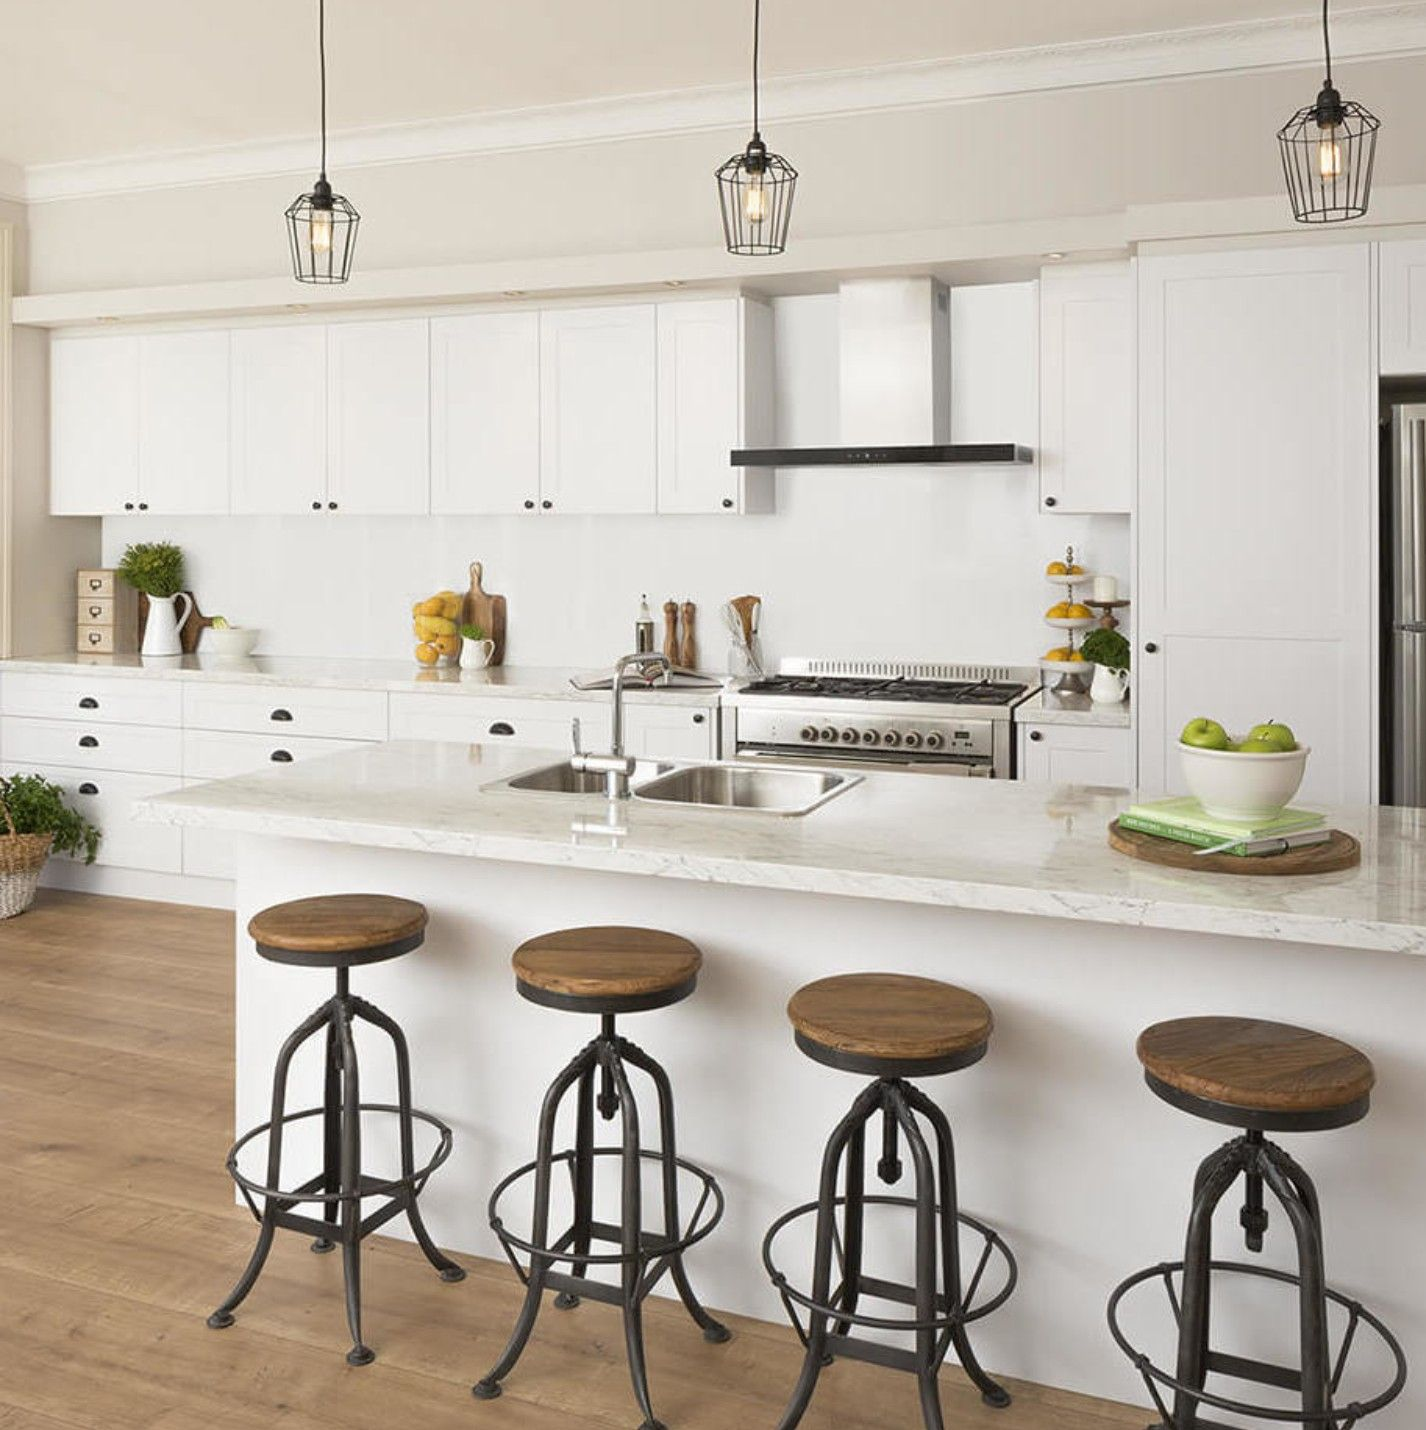 Pin by Myitzu Khaing on Dream Home Kaboodle kitchen